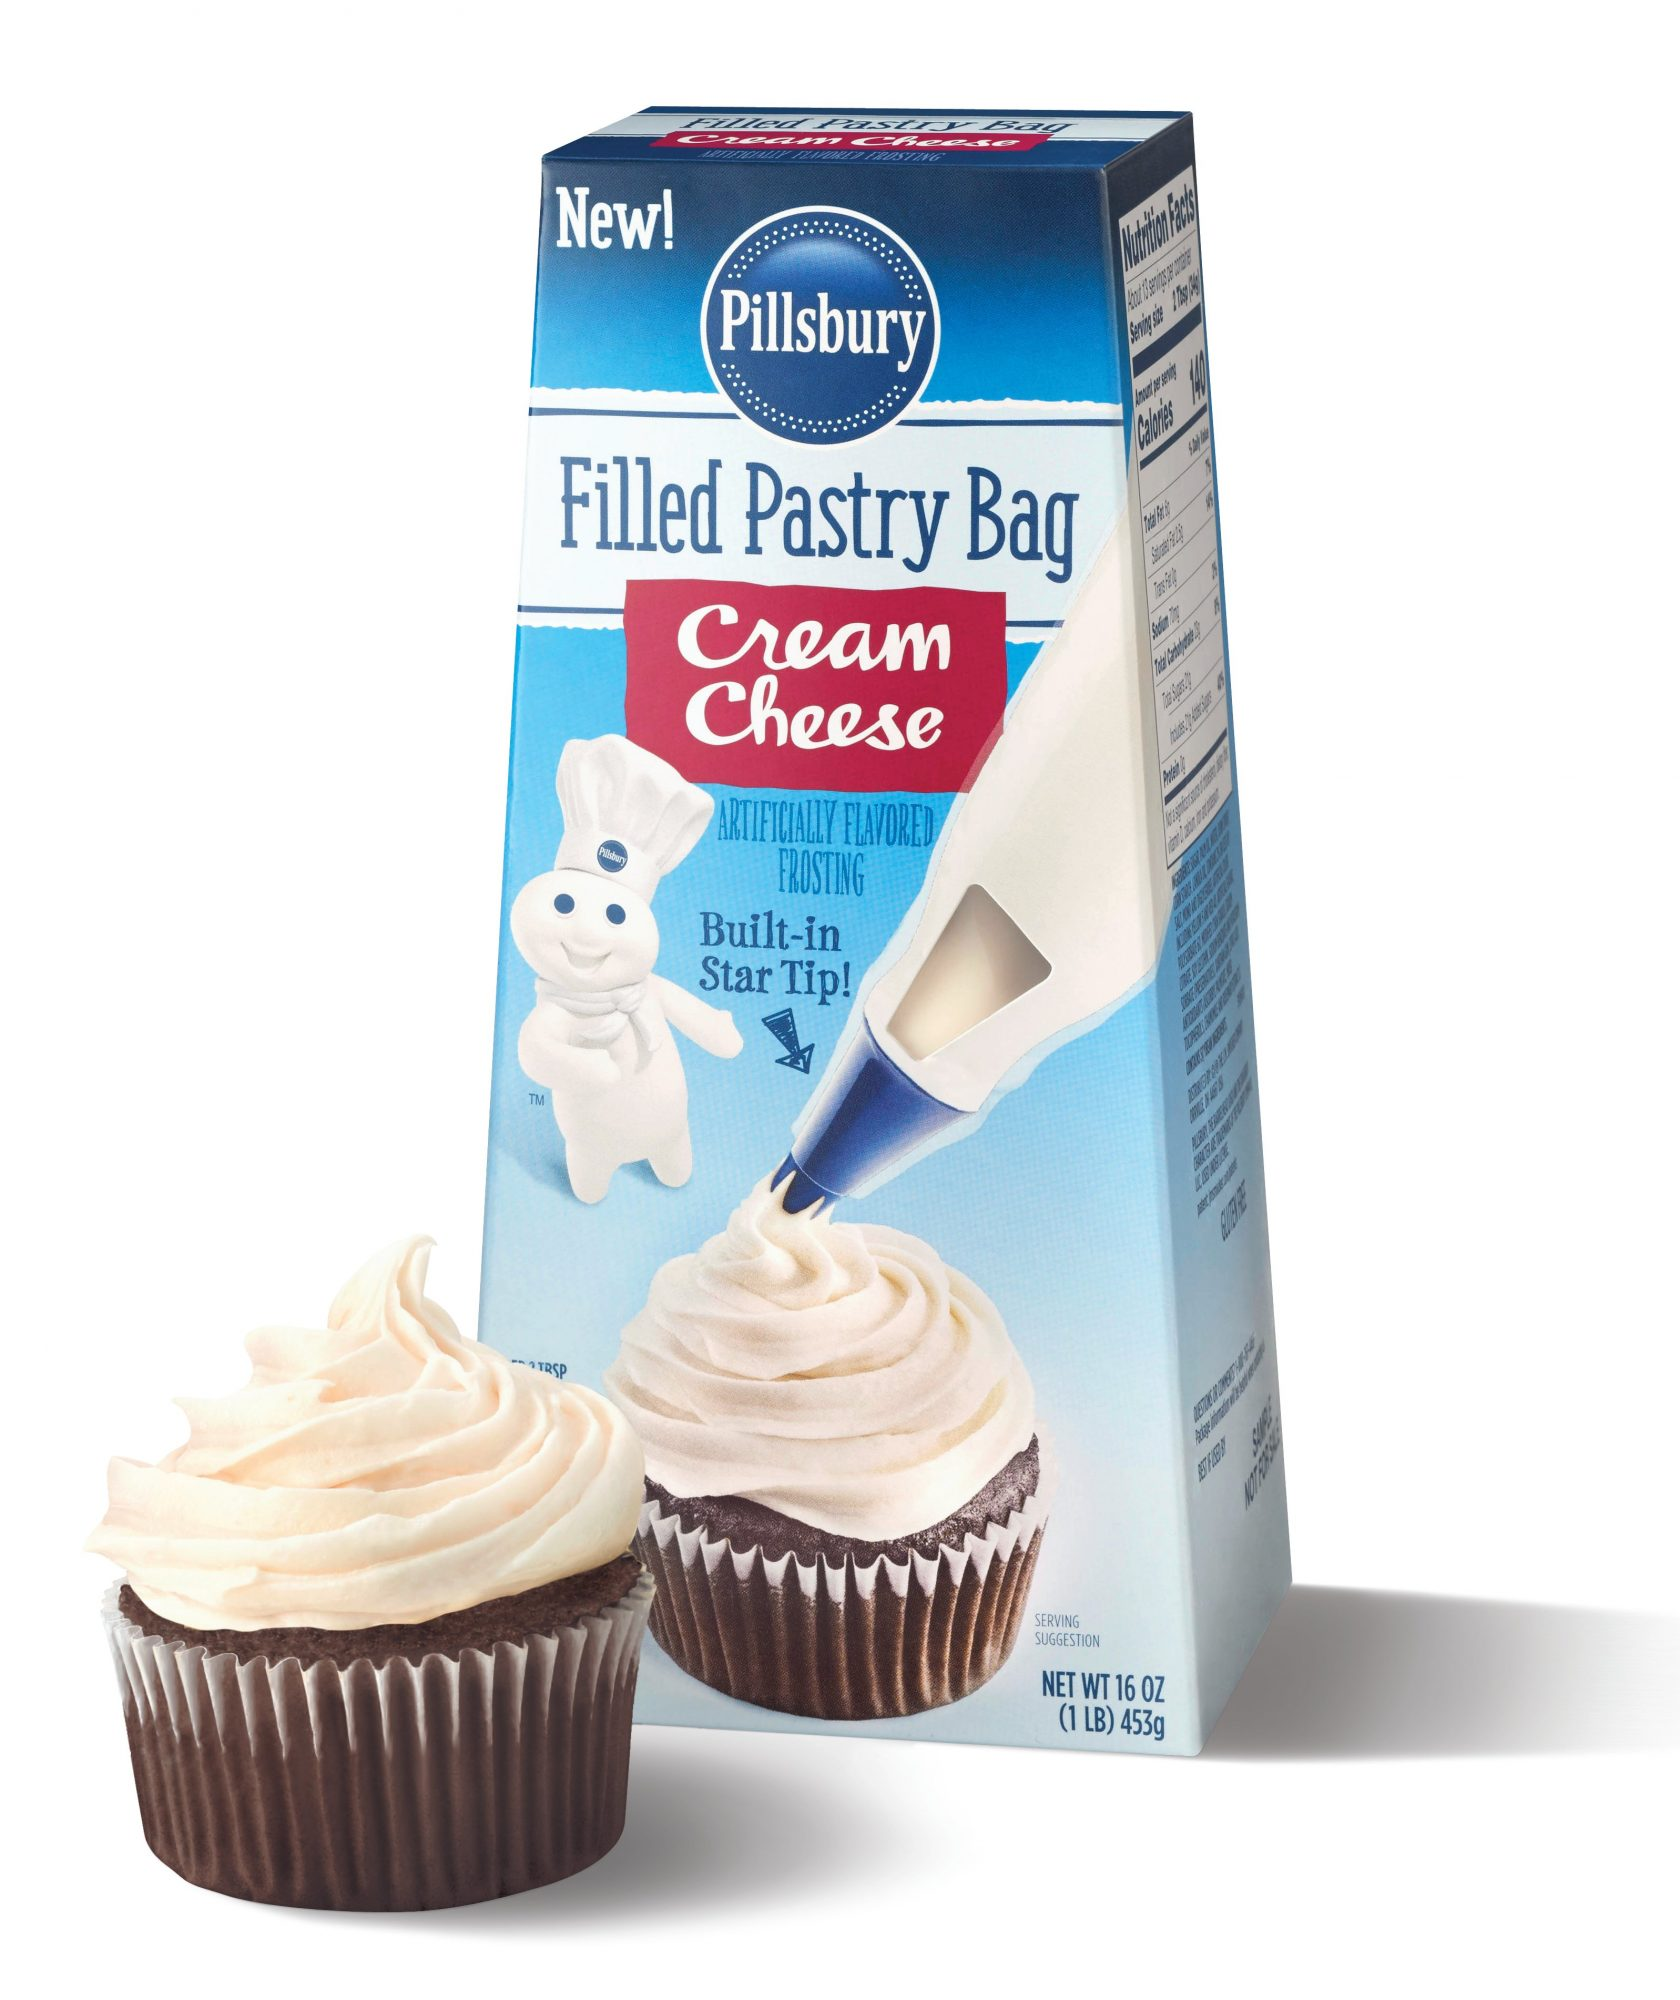 This Genius New Tool Will Help You Frost Cupcakes Like a Pro